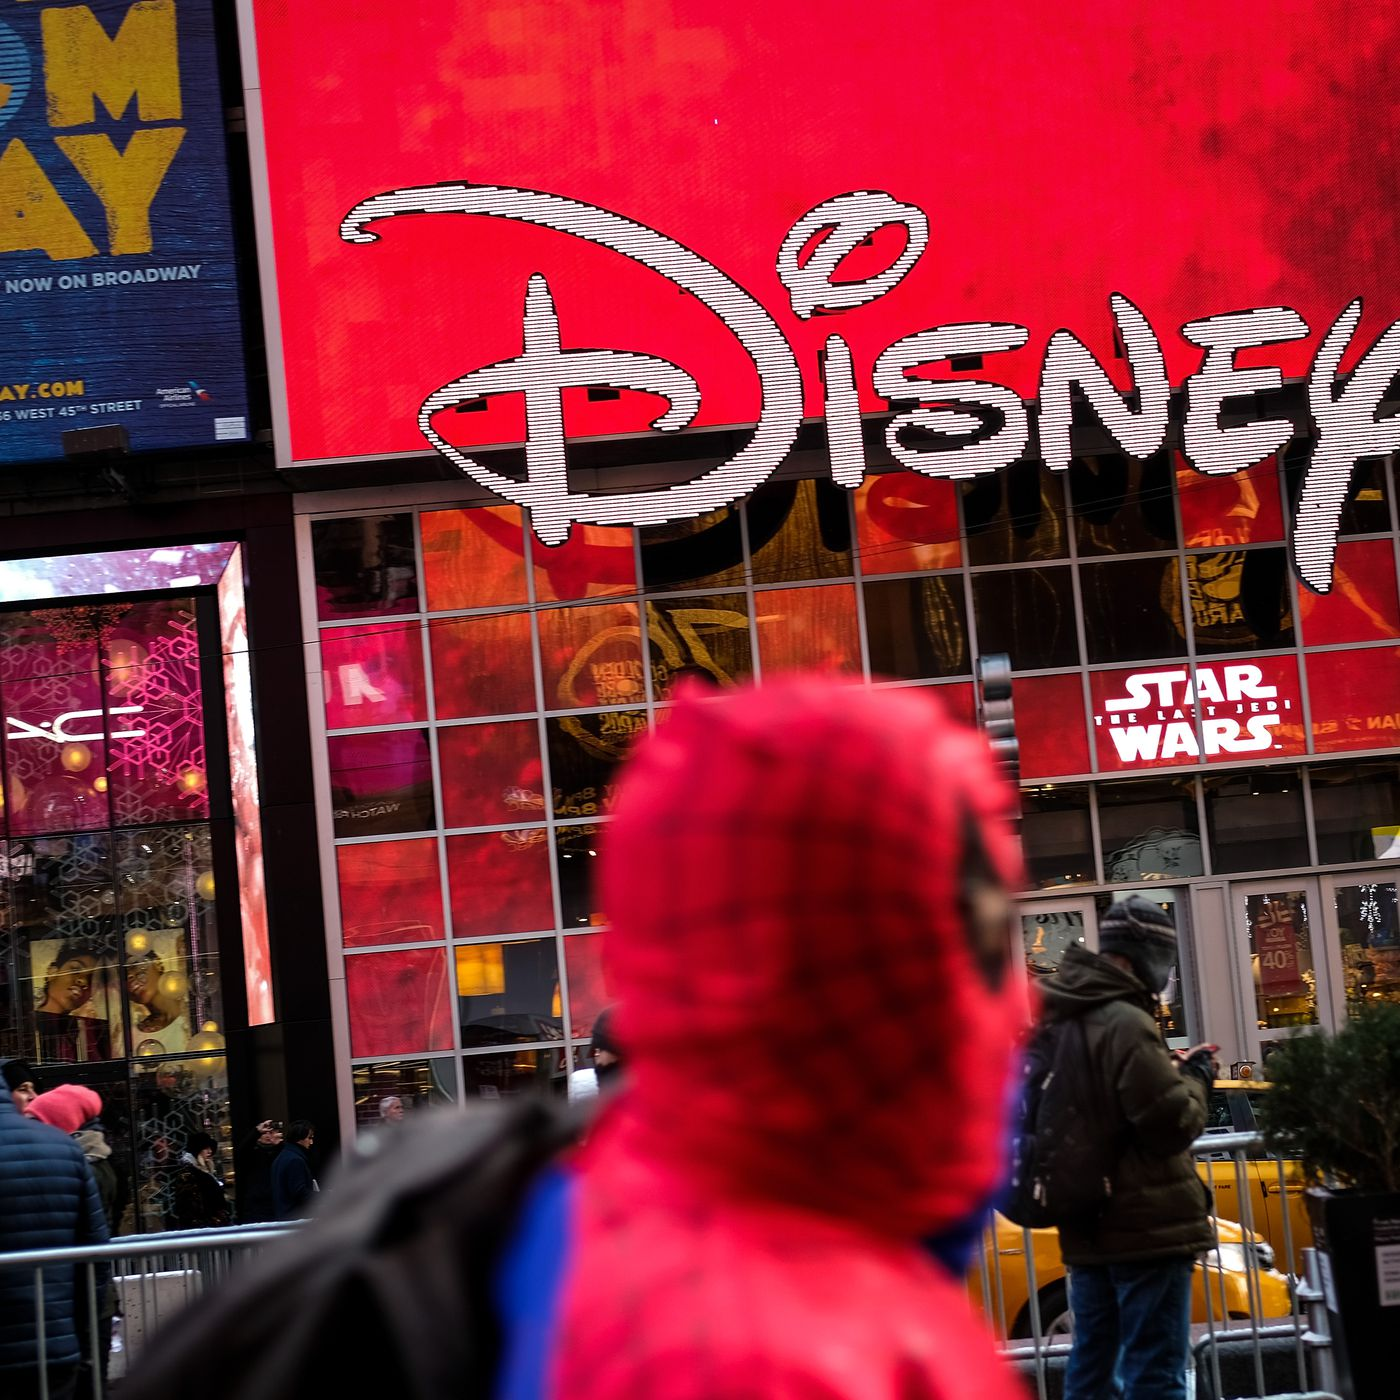 Disney-Fox deal update: The Fox movies and TV shows Disney now owns